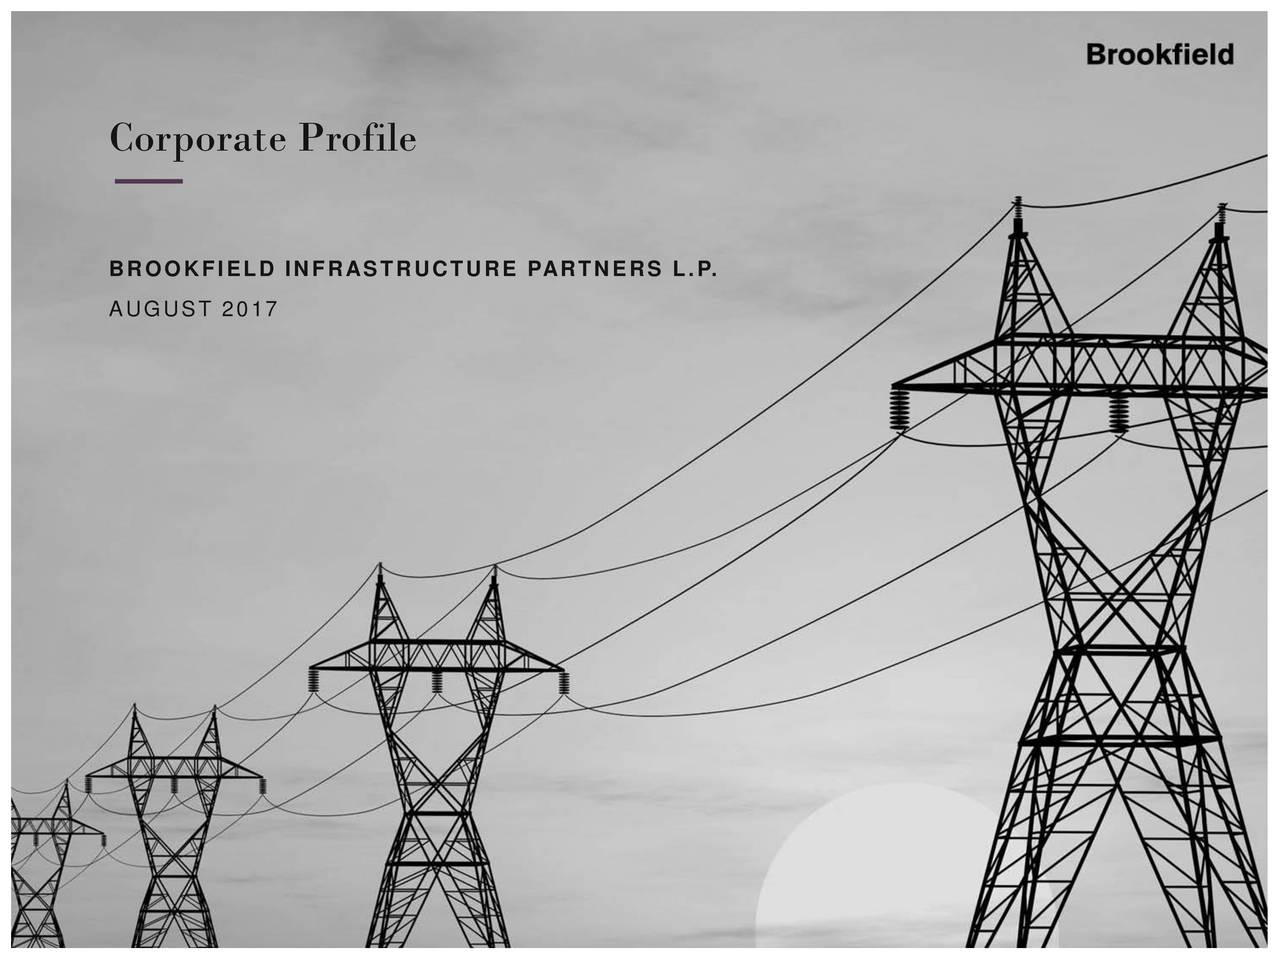 BROOKFIELD INFRASTRUCTURE PARTNERS L.P. AUGUST 2017